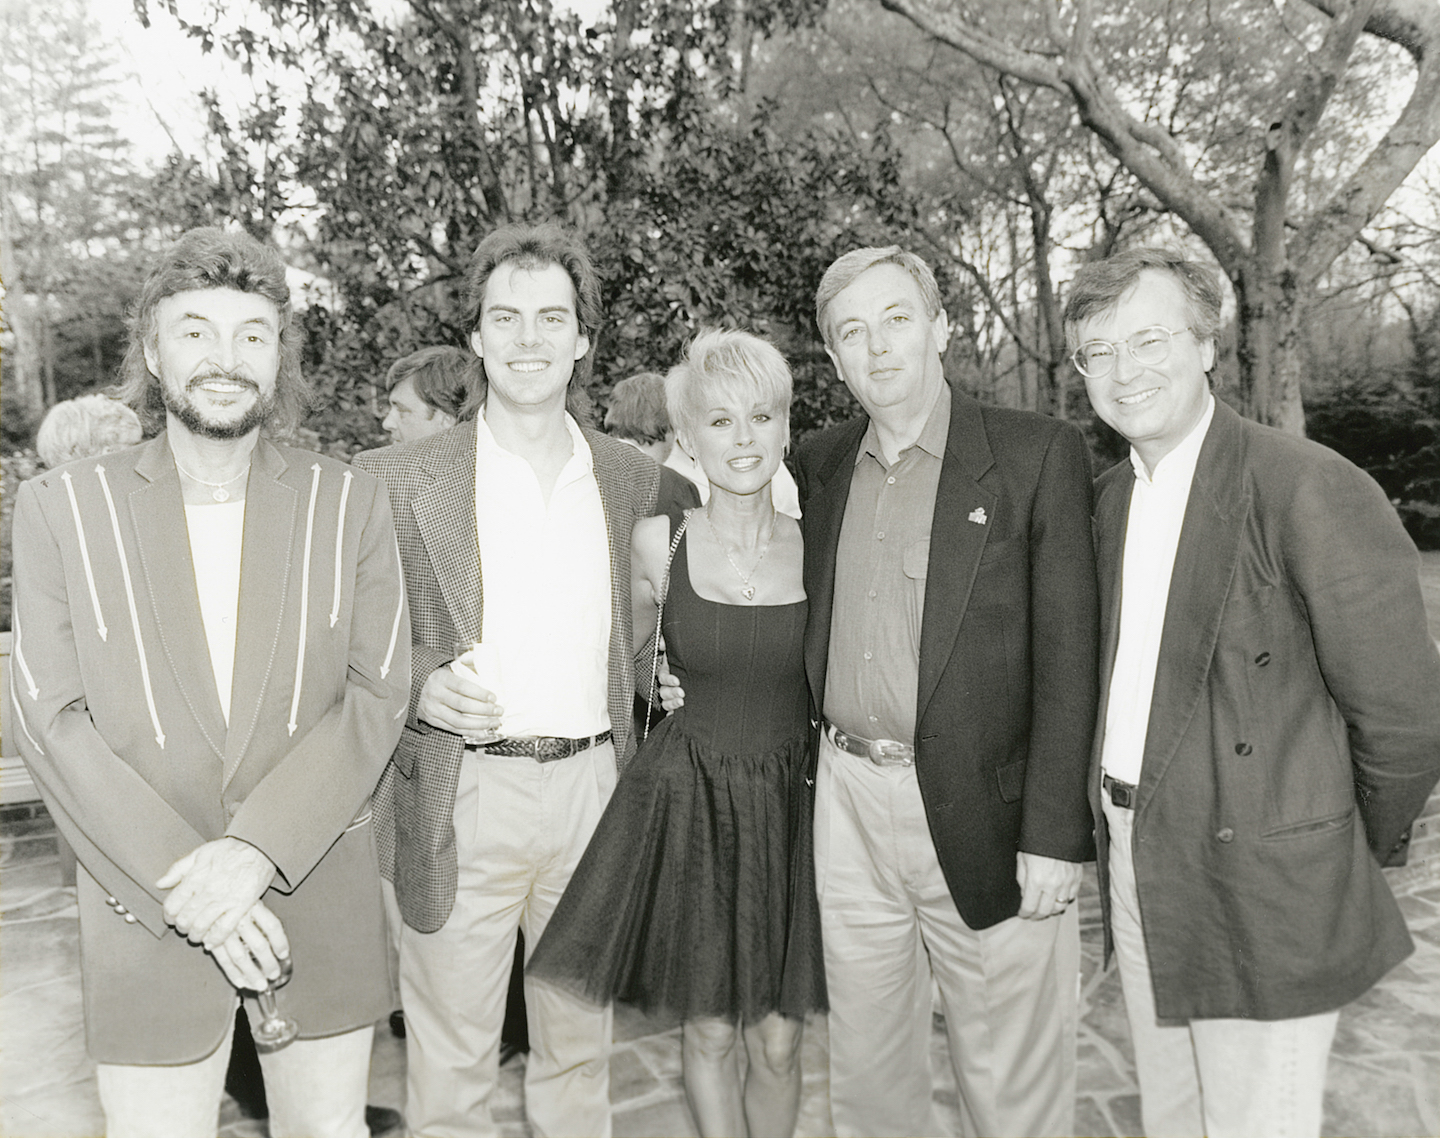 Dale Turner at a home gathering with Lorrie Morgan, Mac Daniel, Coyote Calhoun, and Les Acres